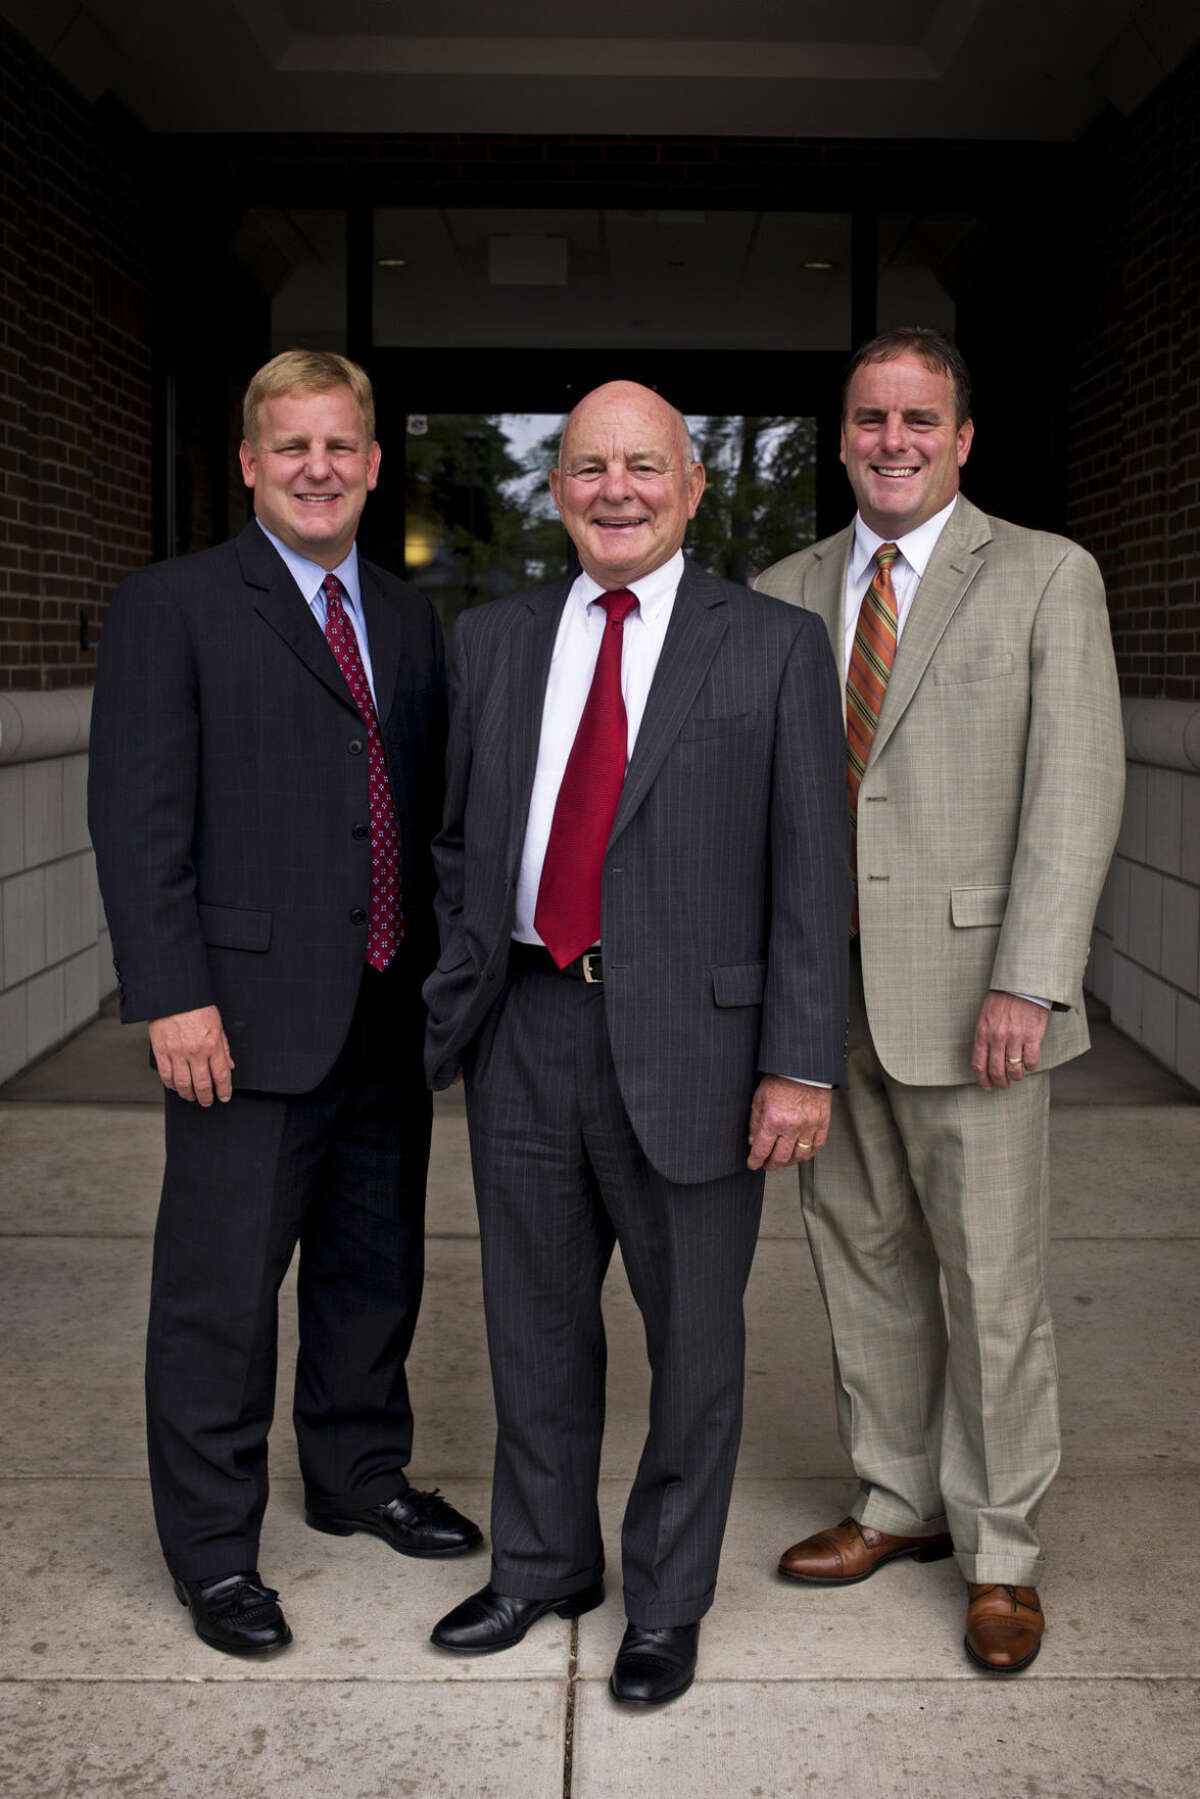 Ieuter Insurance Group president and co-owner Cal Ieuter, center, is pictured with his sons and fellow co-owners, Karl Ieuter, left, and Kurt Ieuter, right, on Wednesday at the Ieuter Insurance Group in Midland. The insurance agency is celebrating its 75th year in business.